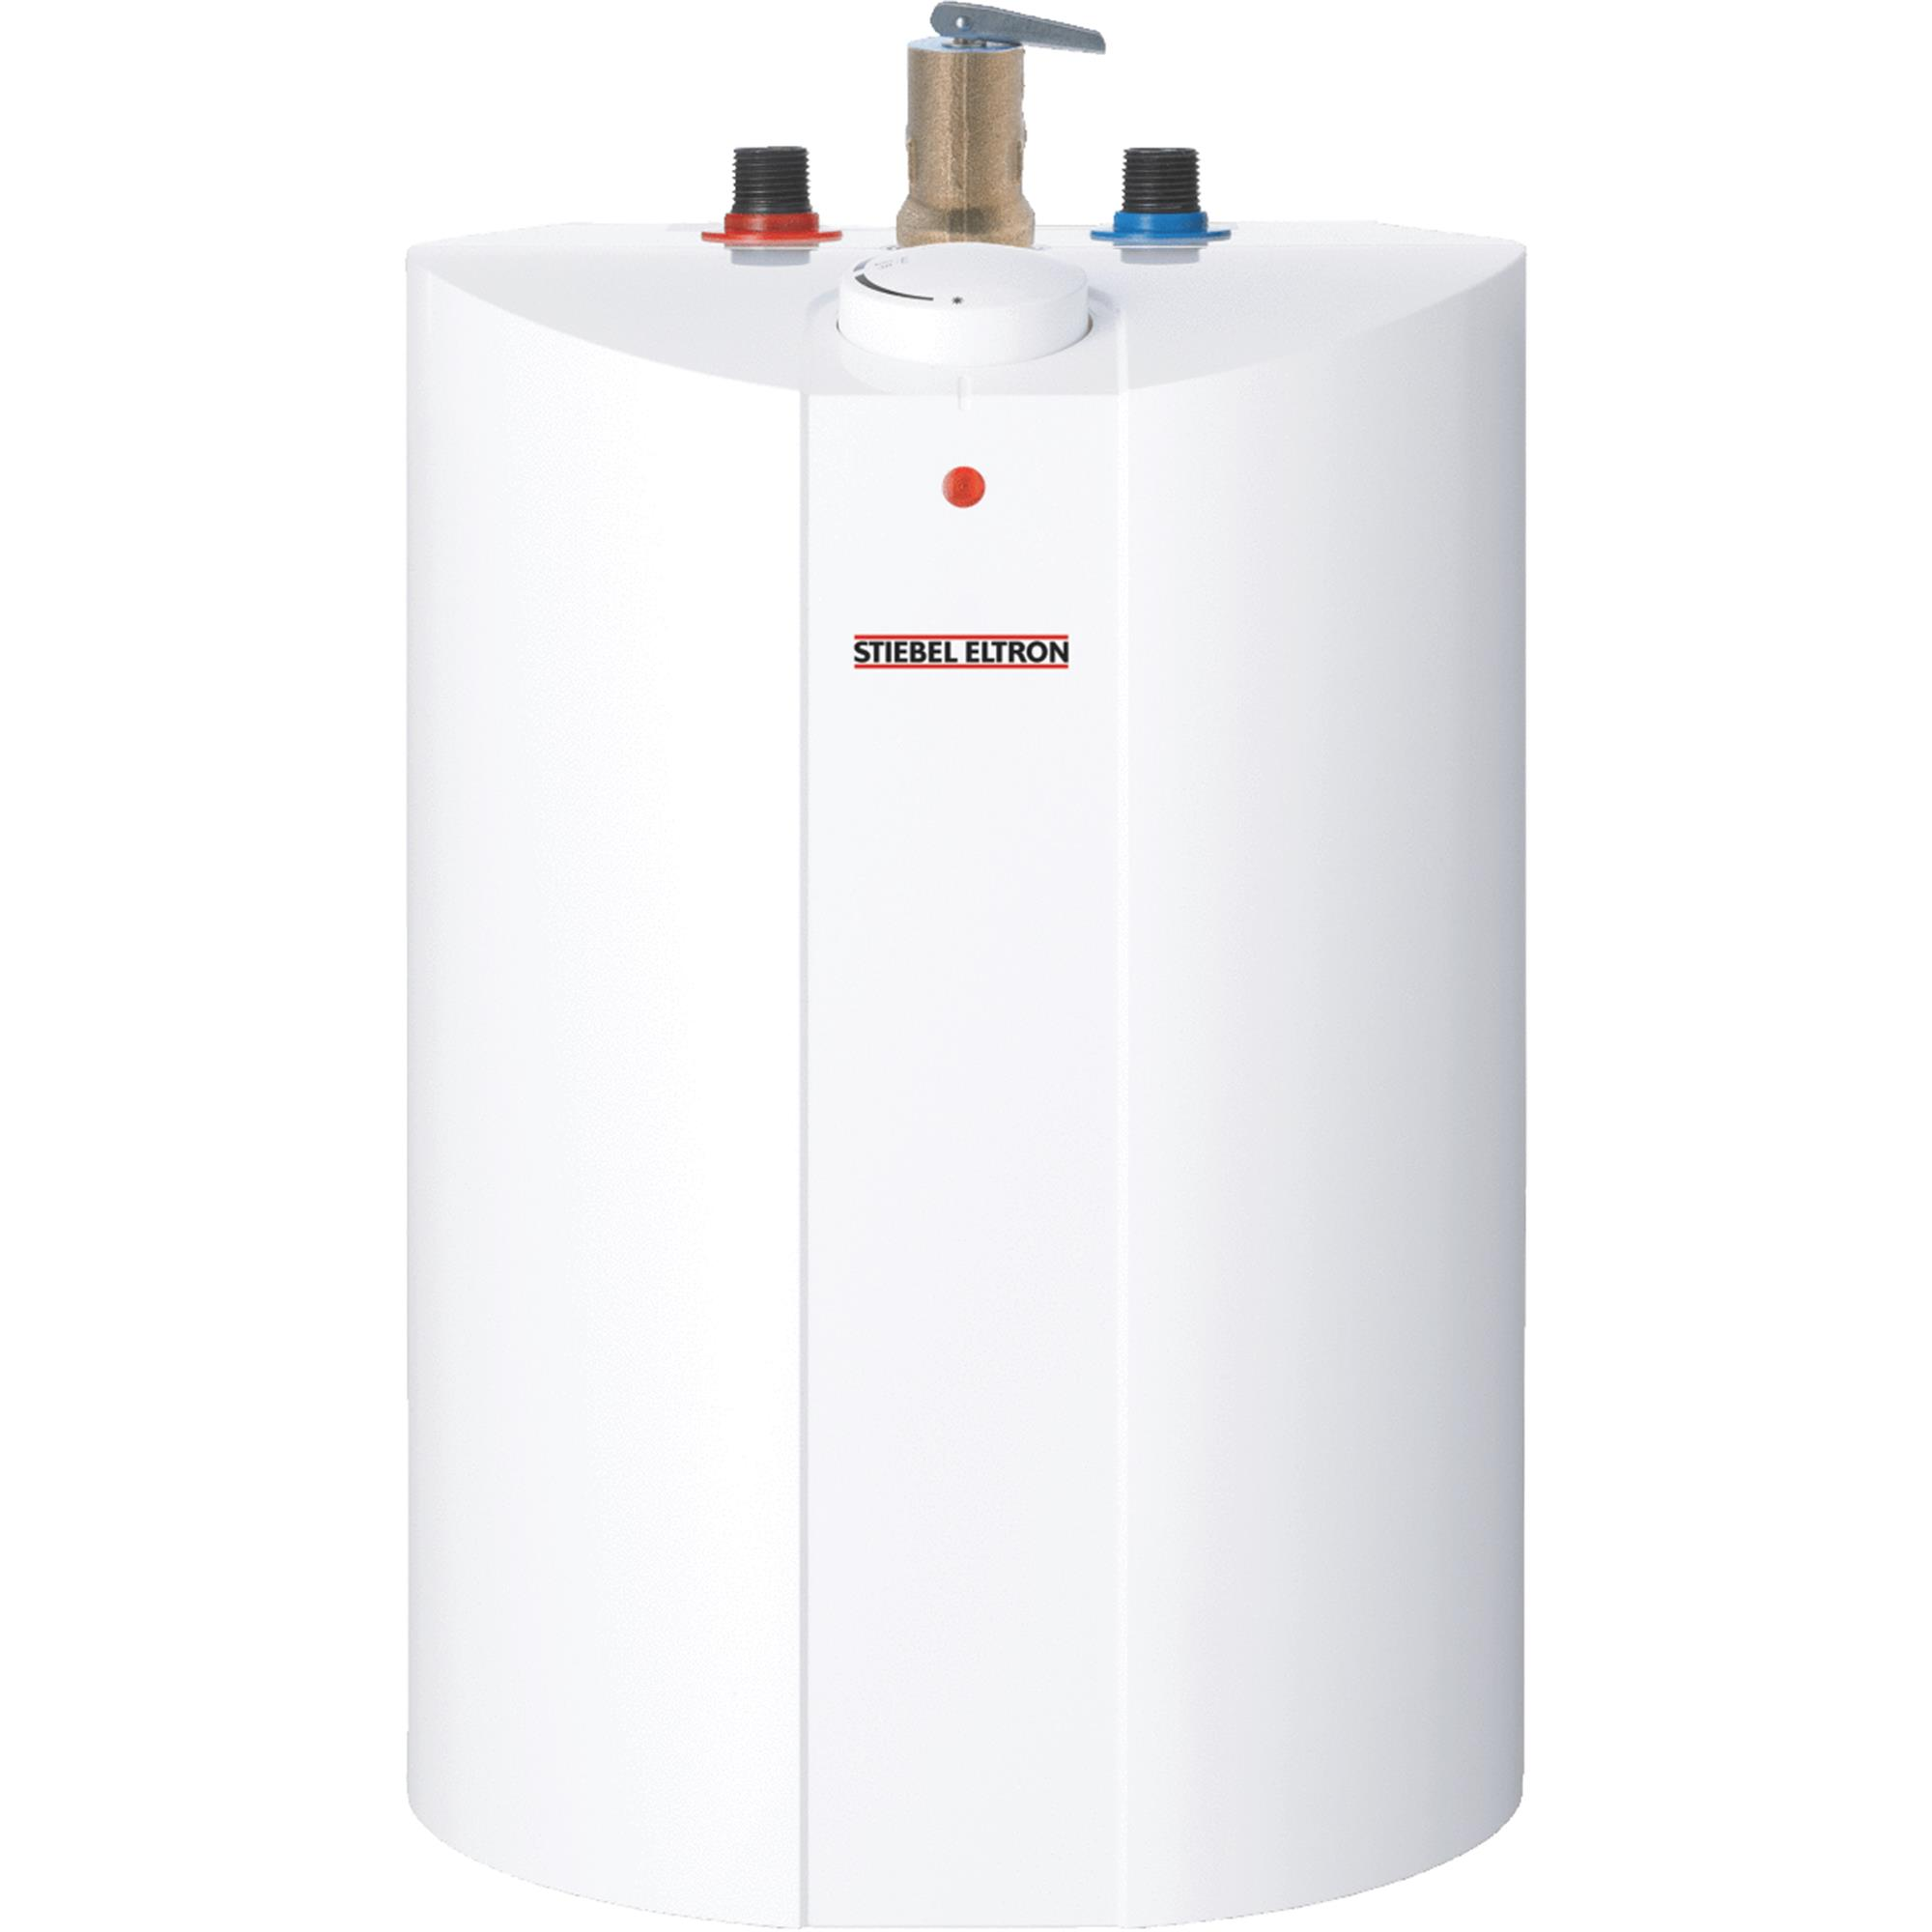 Stiebel Eltron 6gal Point-of-Use Electric Water Heater